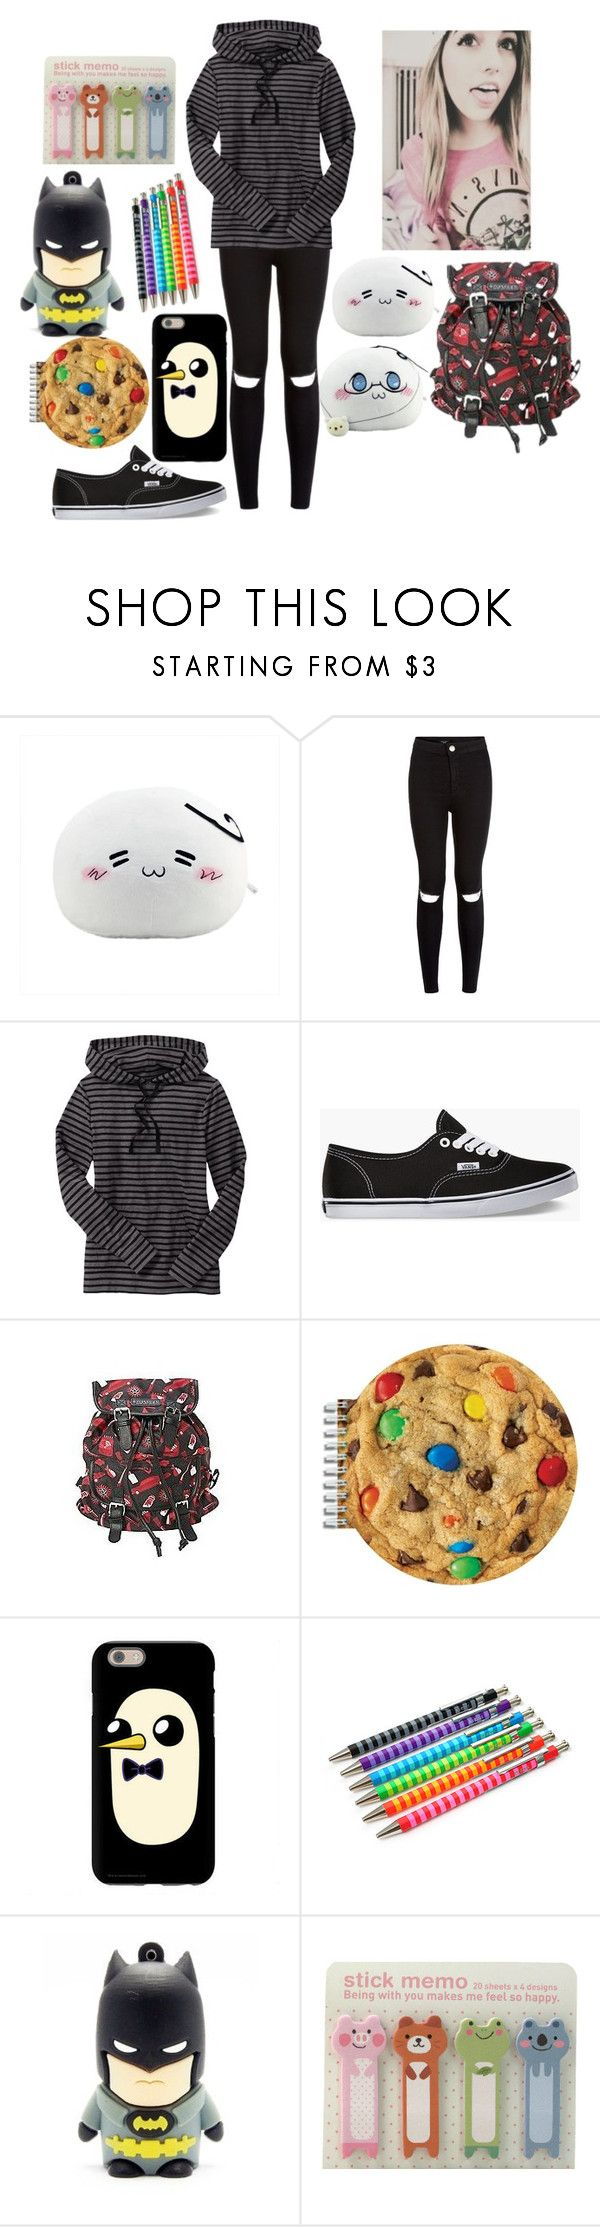 """""""School"""" by wonders-of-the-world ❤ liked on Polyvore featuring New Look, Old Navy, Vans, Hot Topic, Iscream and OHTO"""